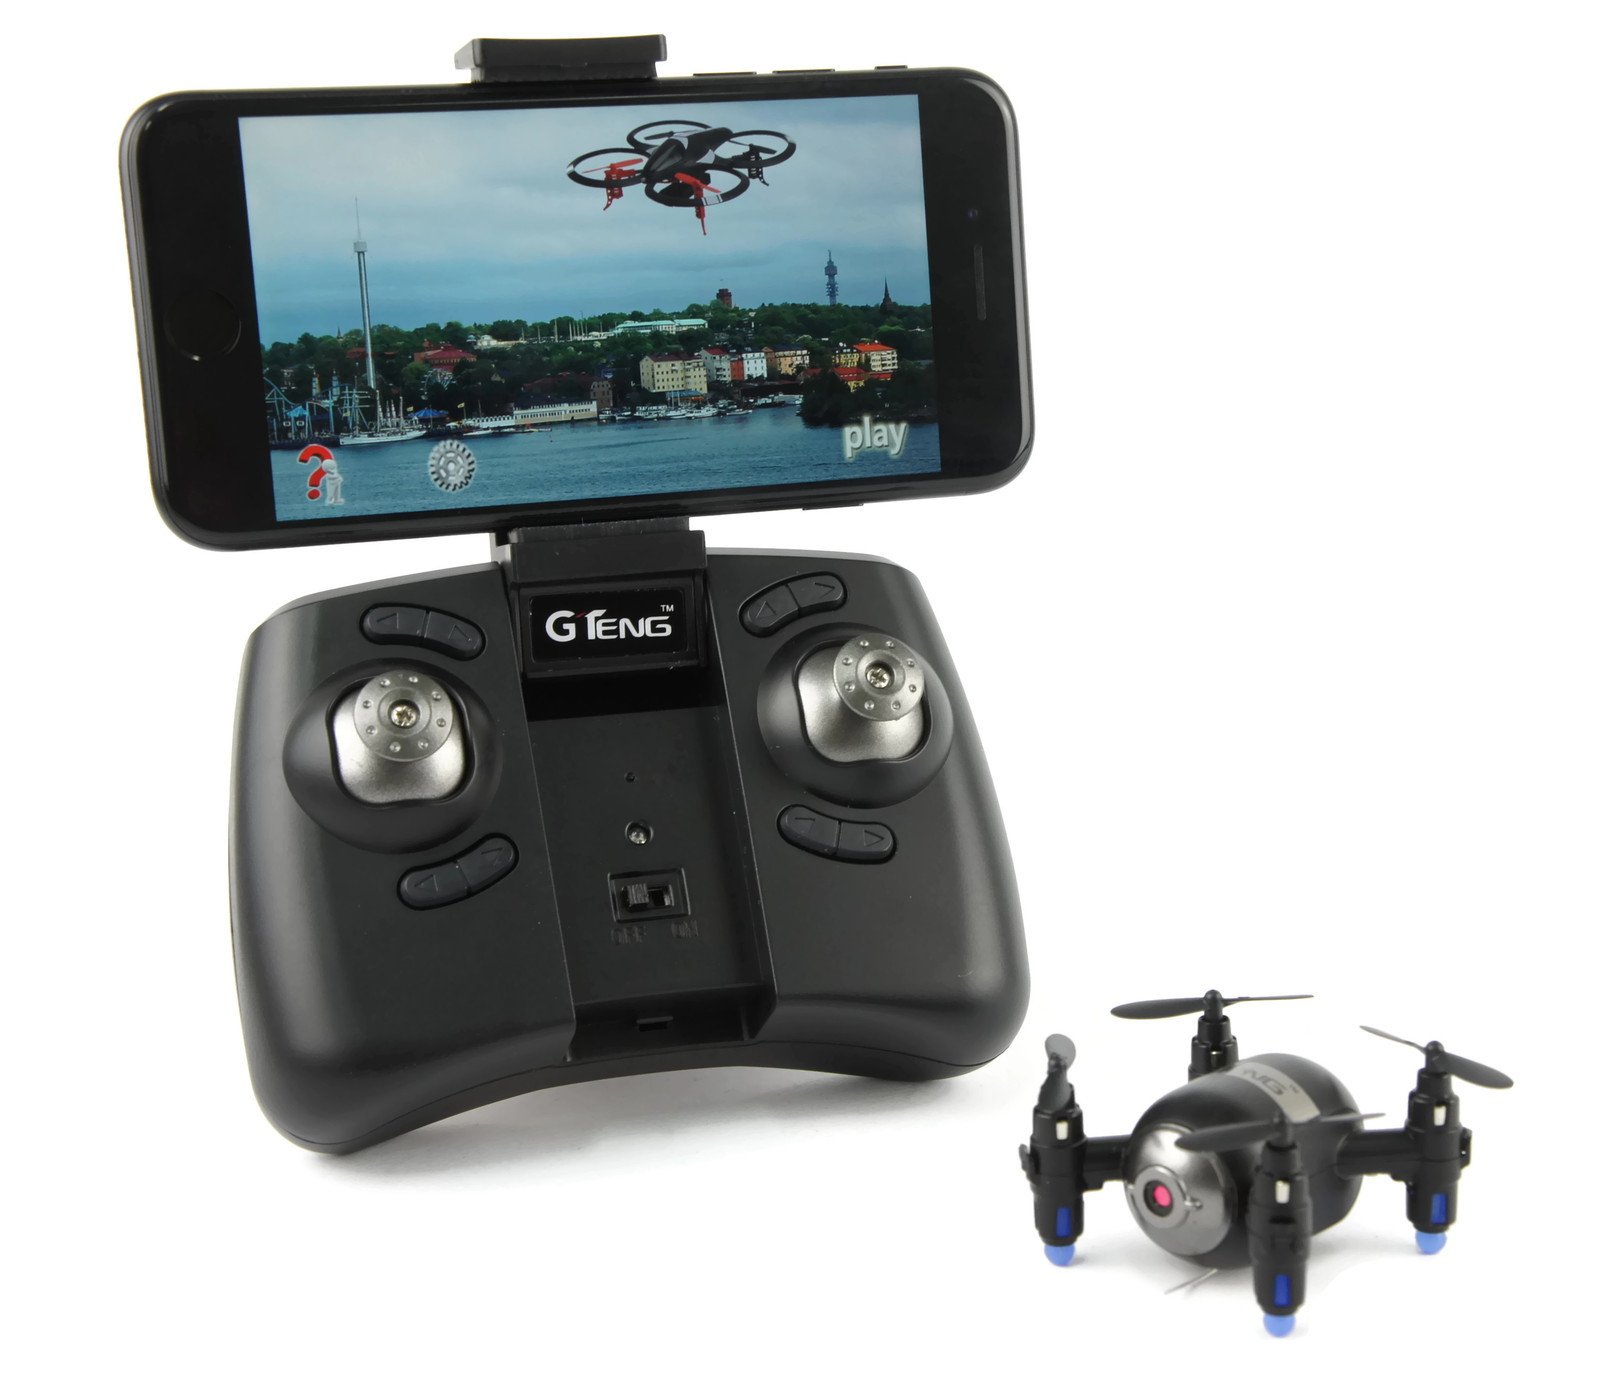 rc drone with live camera with Rc Micro Drone With Wi Fi Fpv Camera Gteng T906w on Aerial Footages Of Liberty State Park New York Video moreover 32319189379 together with A NX1053 4402 also GYROSparrowHeliReplacementRCHelicopterPartsSet moreover Smrc S1 Mini Rc Drone With Hd Wifi Camera Pocket Selfie 2 0mp Wifi Fpv Real Time Folding Helicopter For Chrismas Toy Boy Gift.